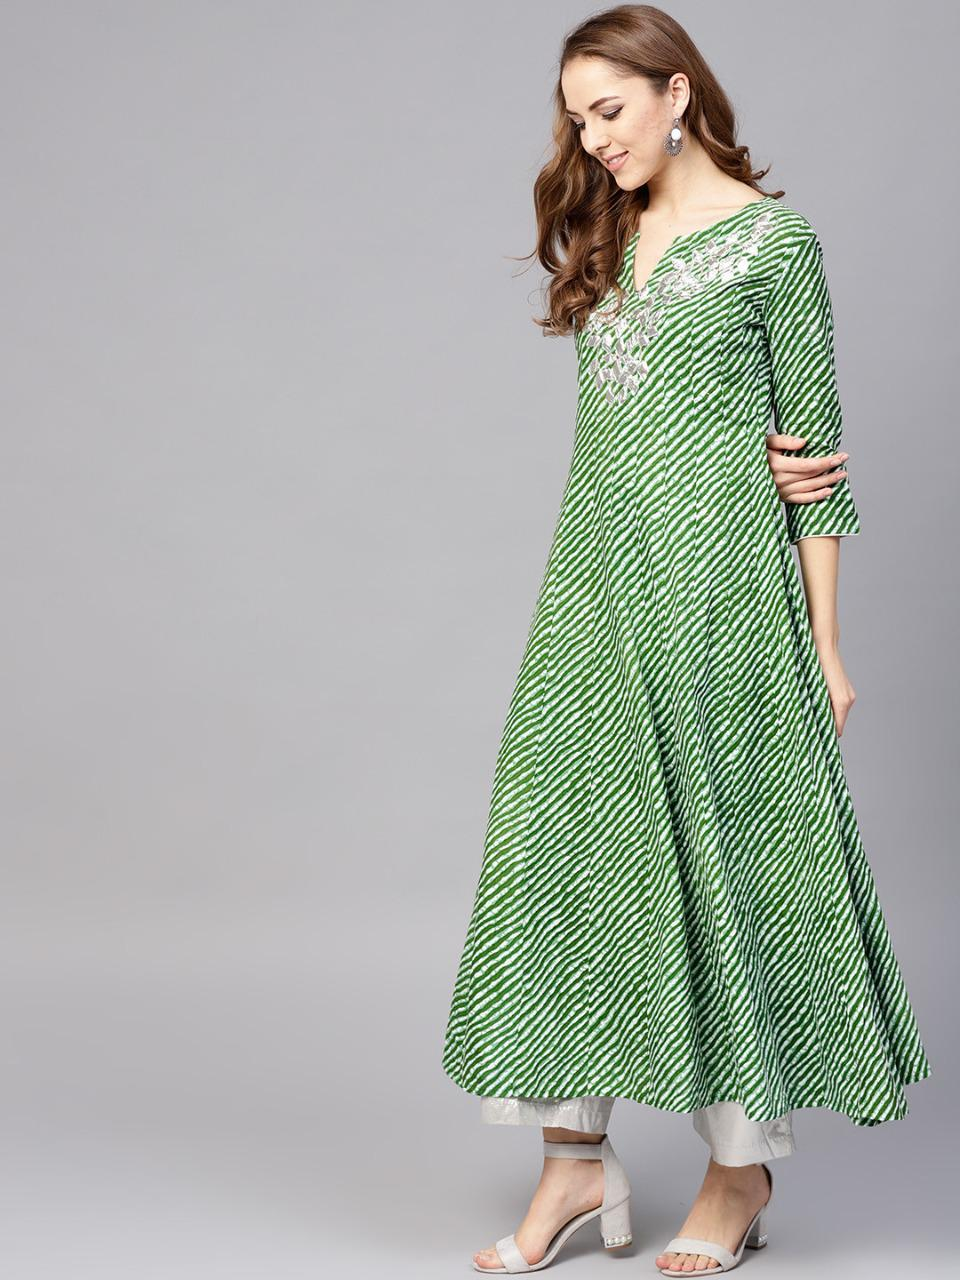 Green And White Leheriya Print Anarkali Kurta Dress Online